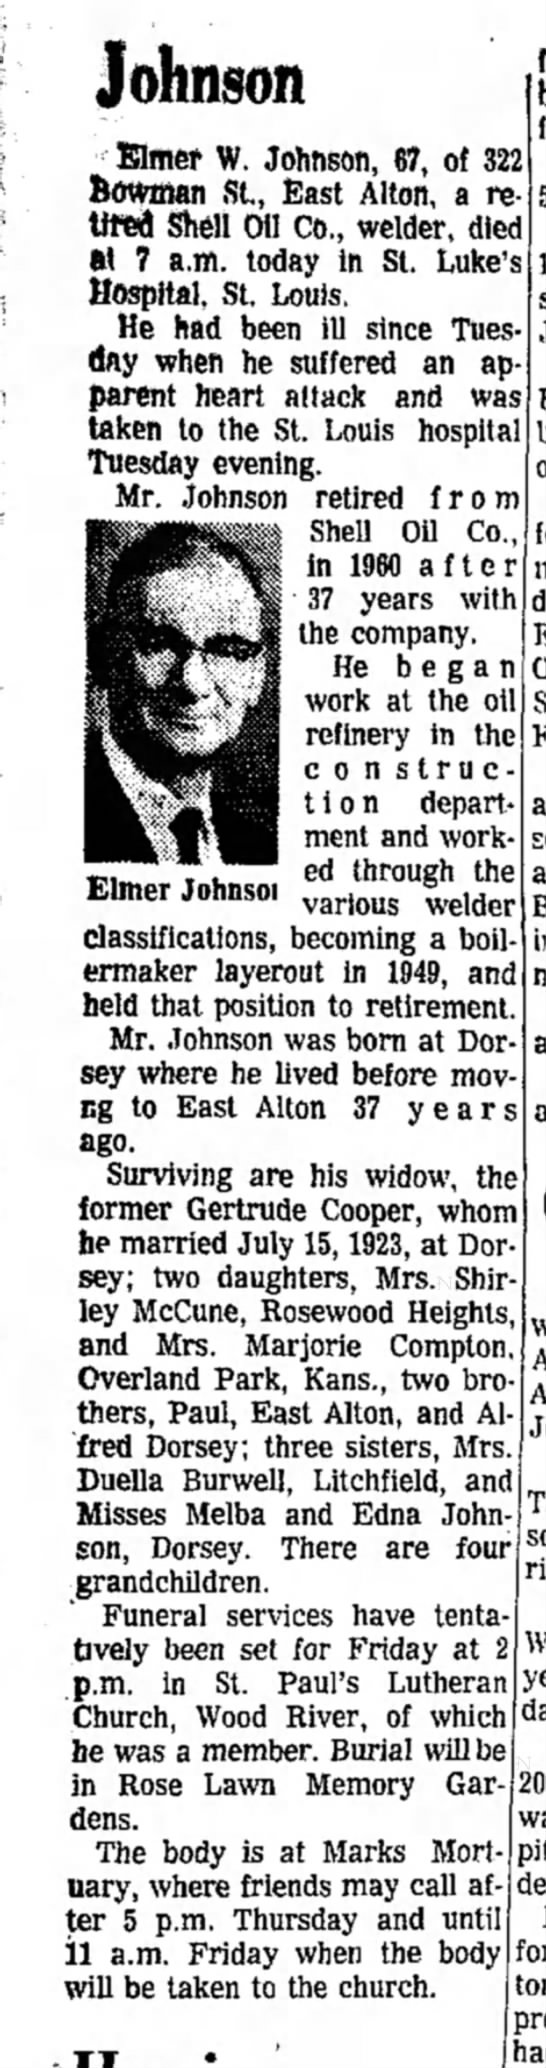 Johnson_Elmer_Obit_1964 -